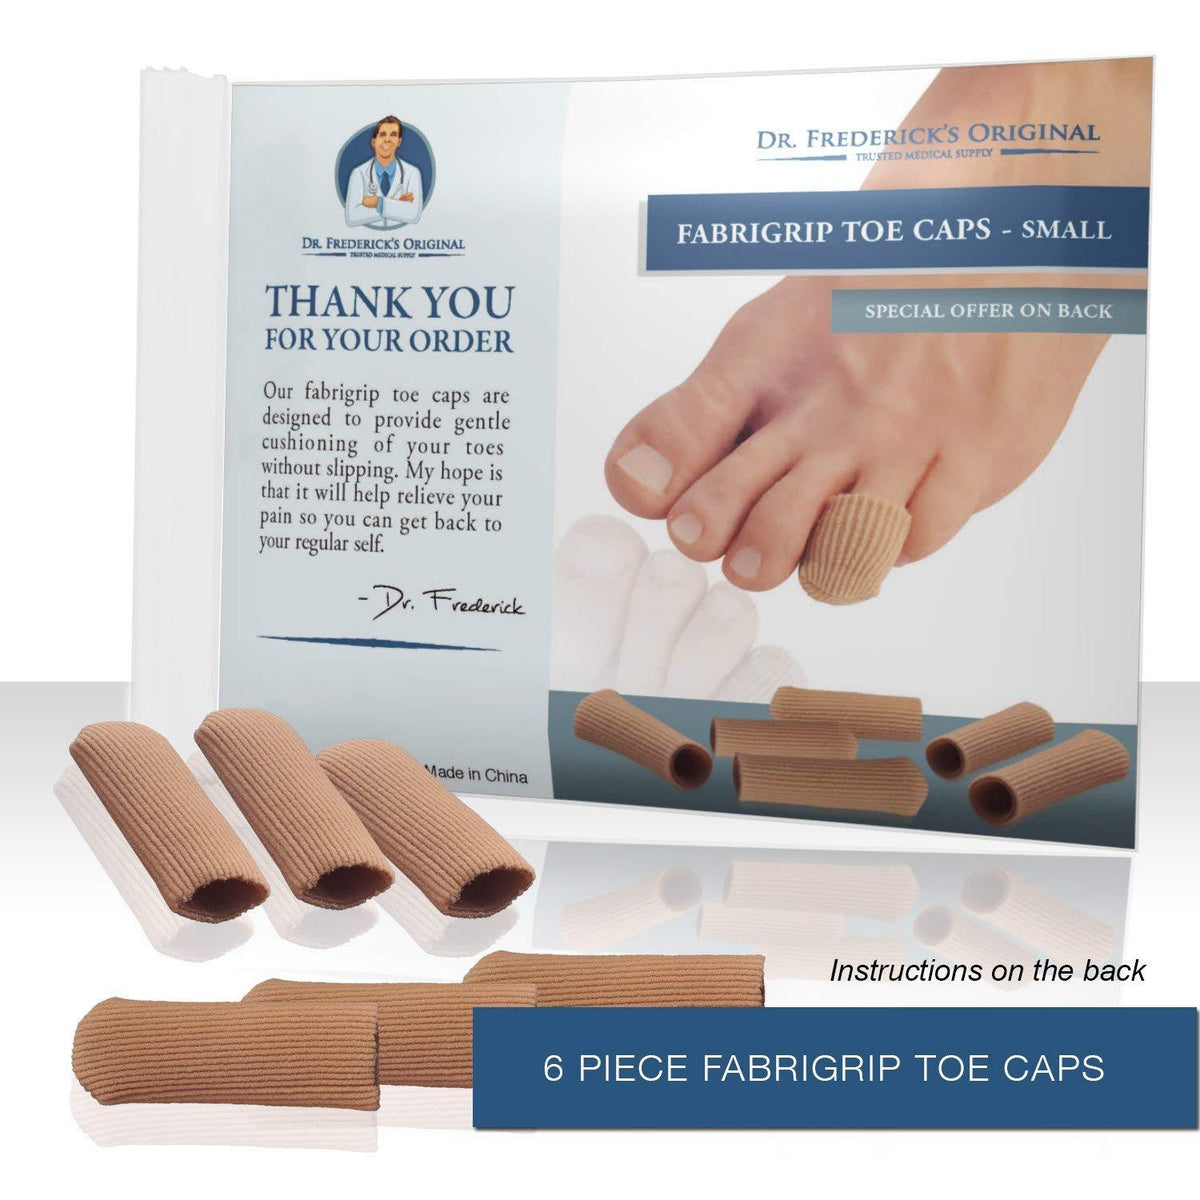 Dr. Frederick's Original Fabrigrip Toe Caps -- 4 Pieces - for Corns, Calluses, Blisters, and Ingrown Toenails Foot Pain Dr. Frederick's Original Small